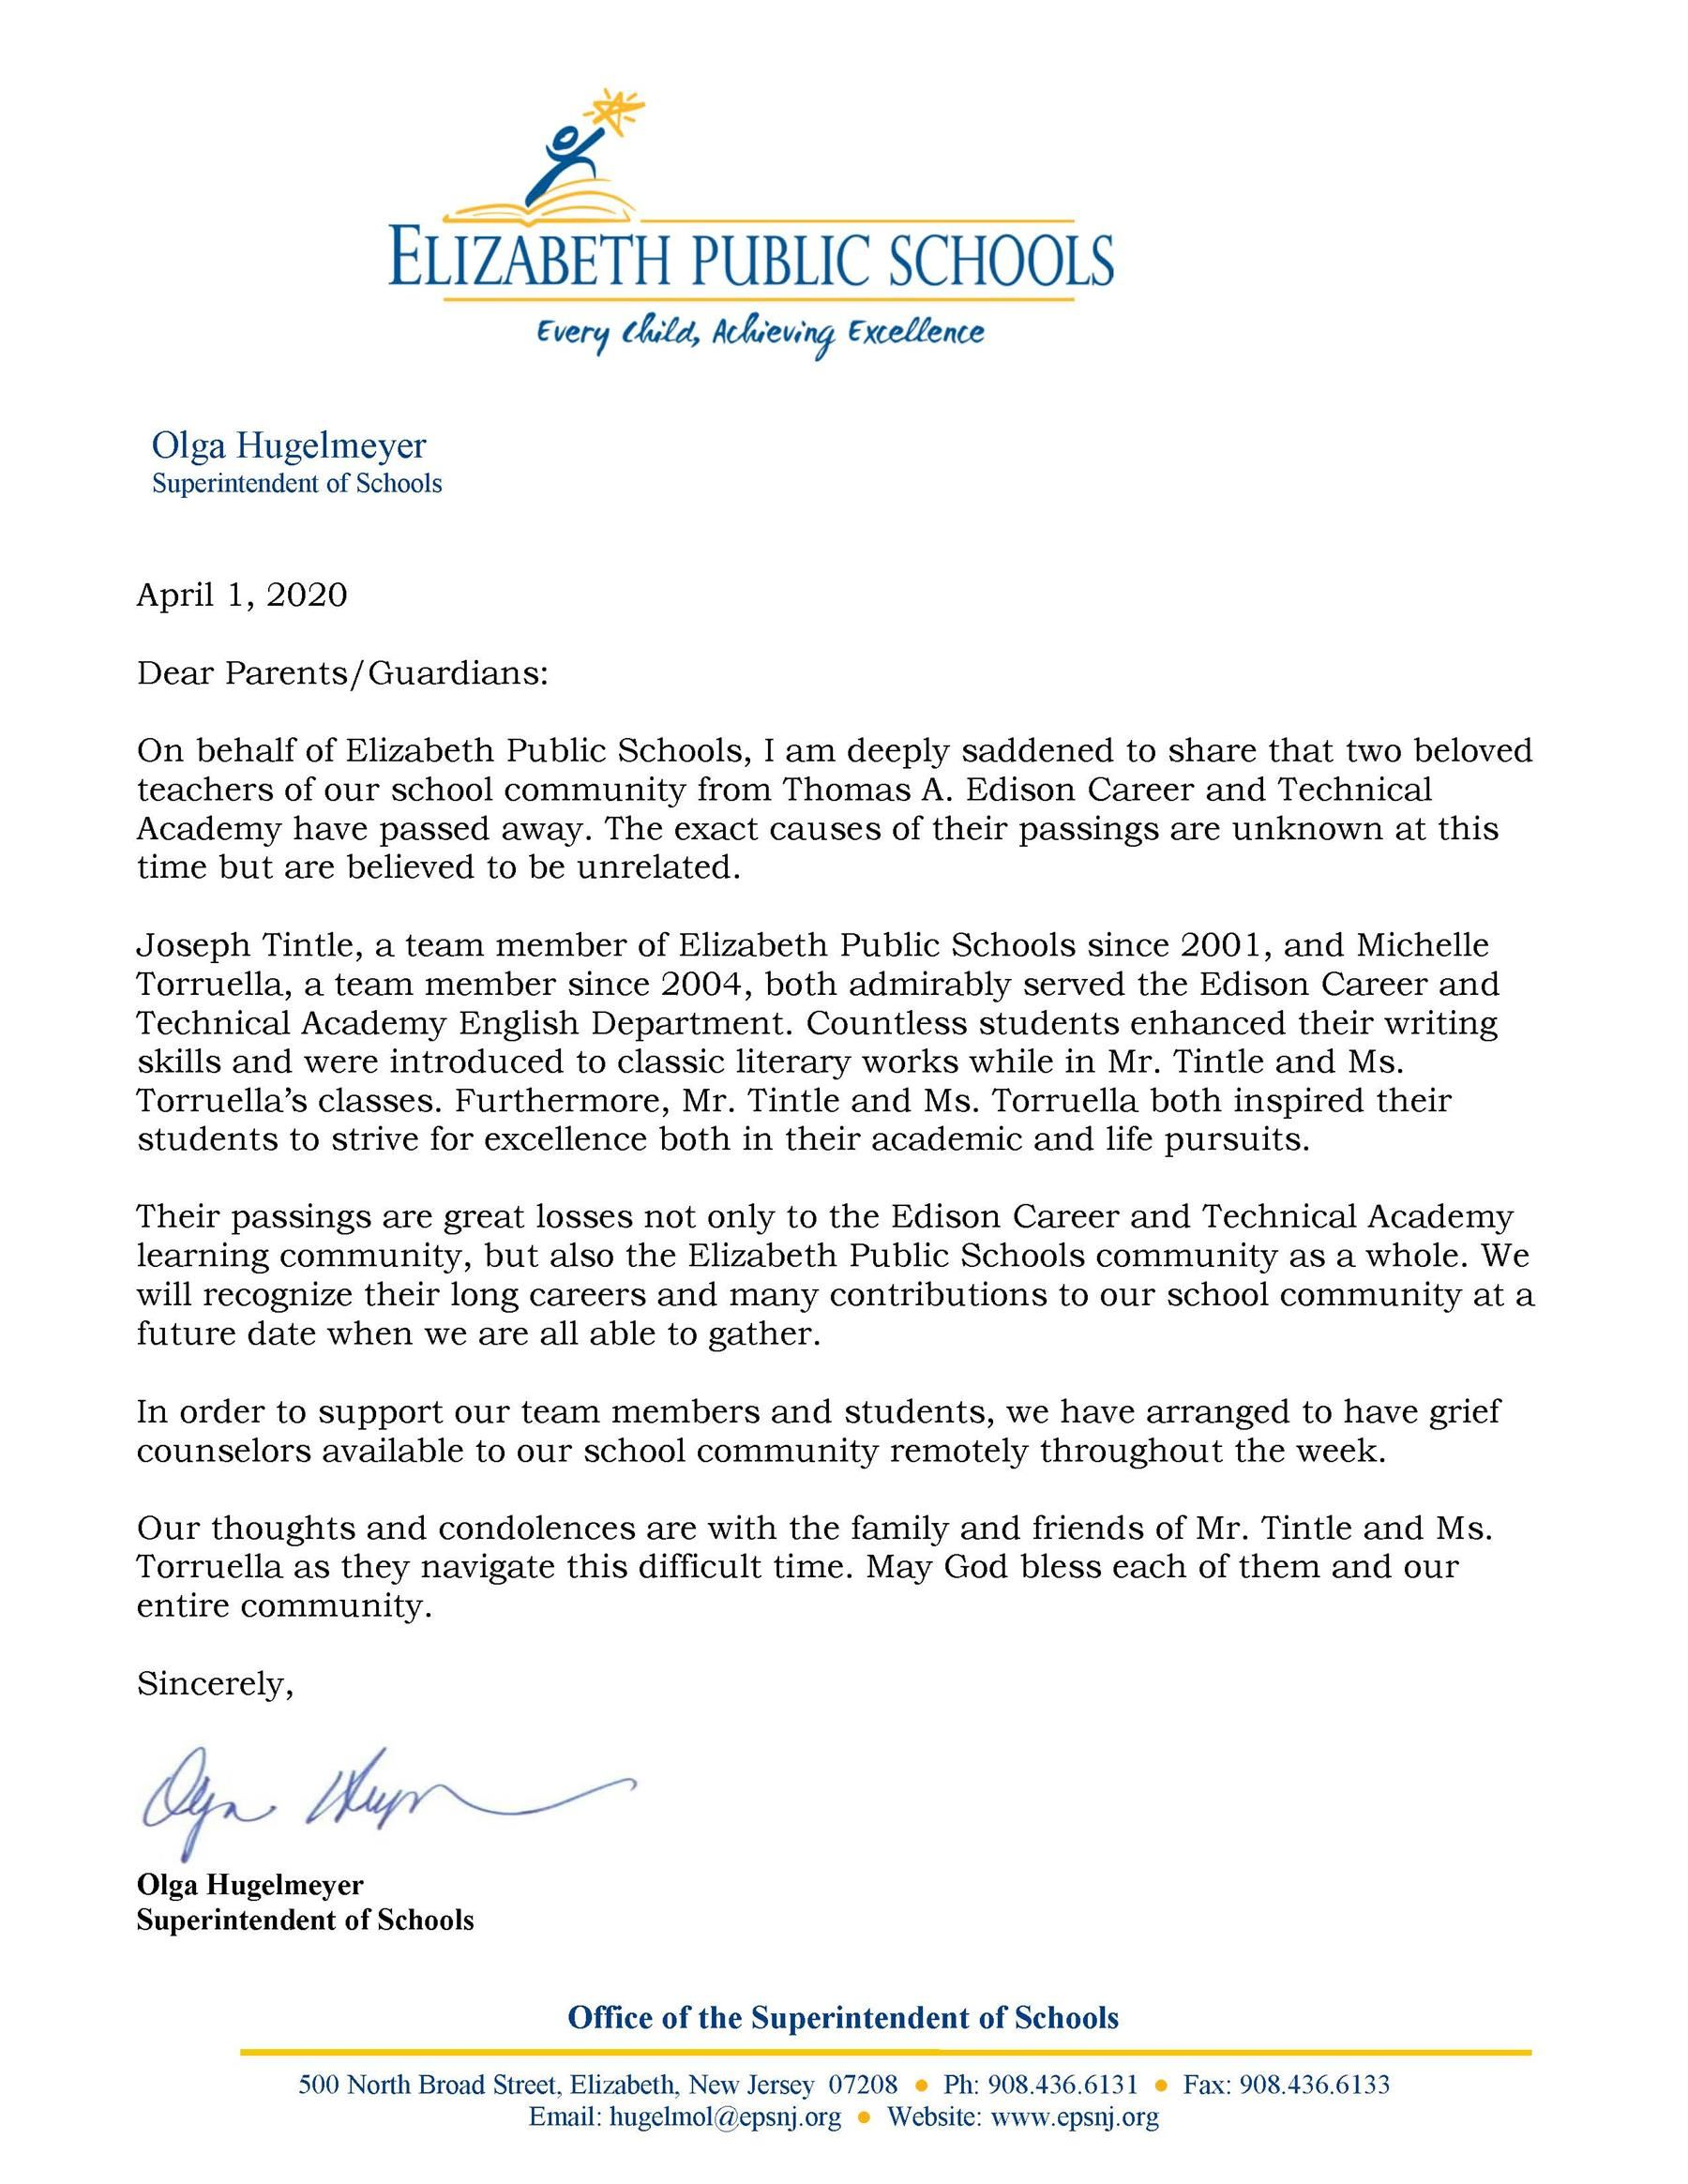 Letter to Community about the Passing of Joseph Tintle and Michelle Torruella- 4-1-20